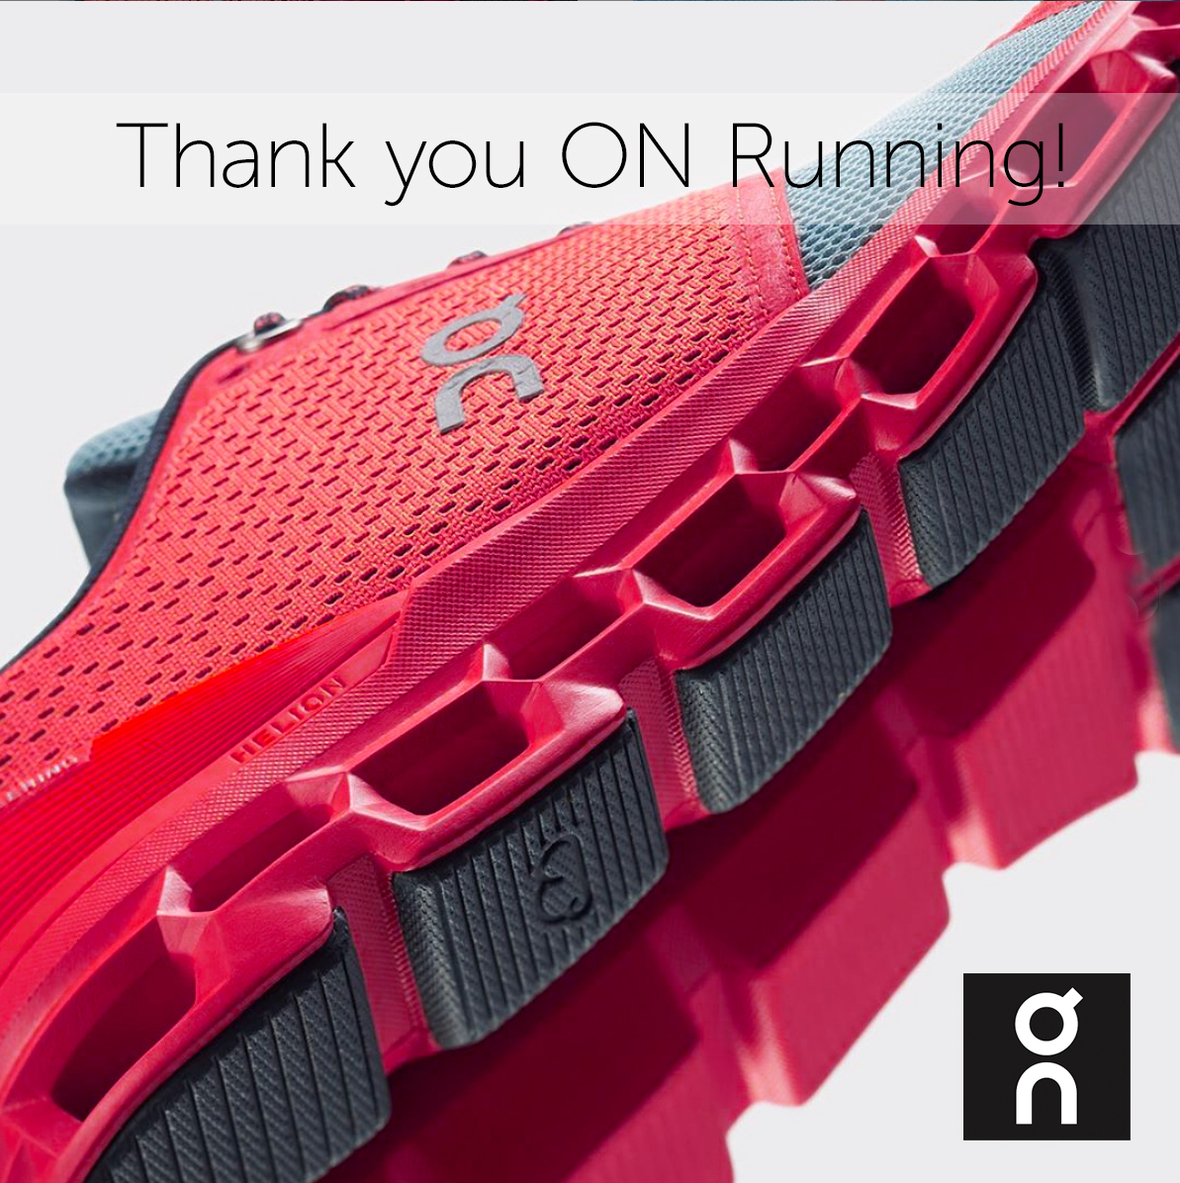 thanks ON running